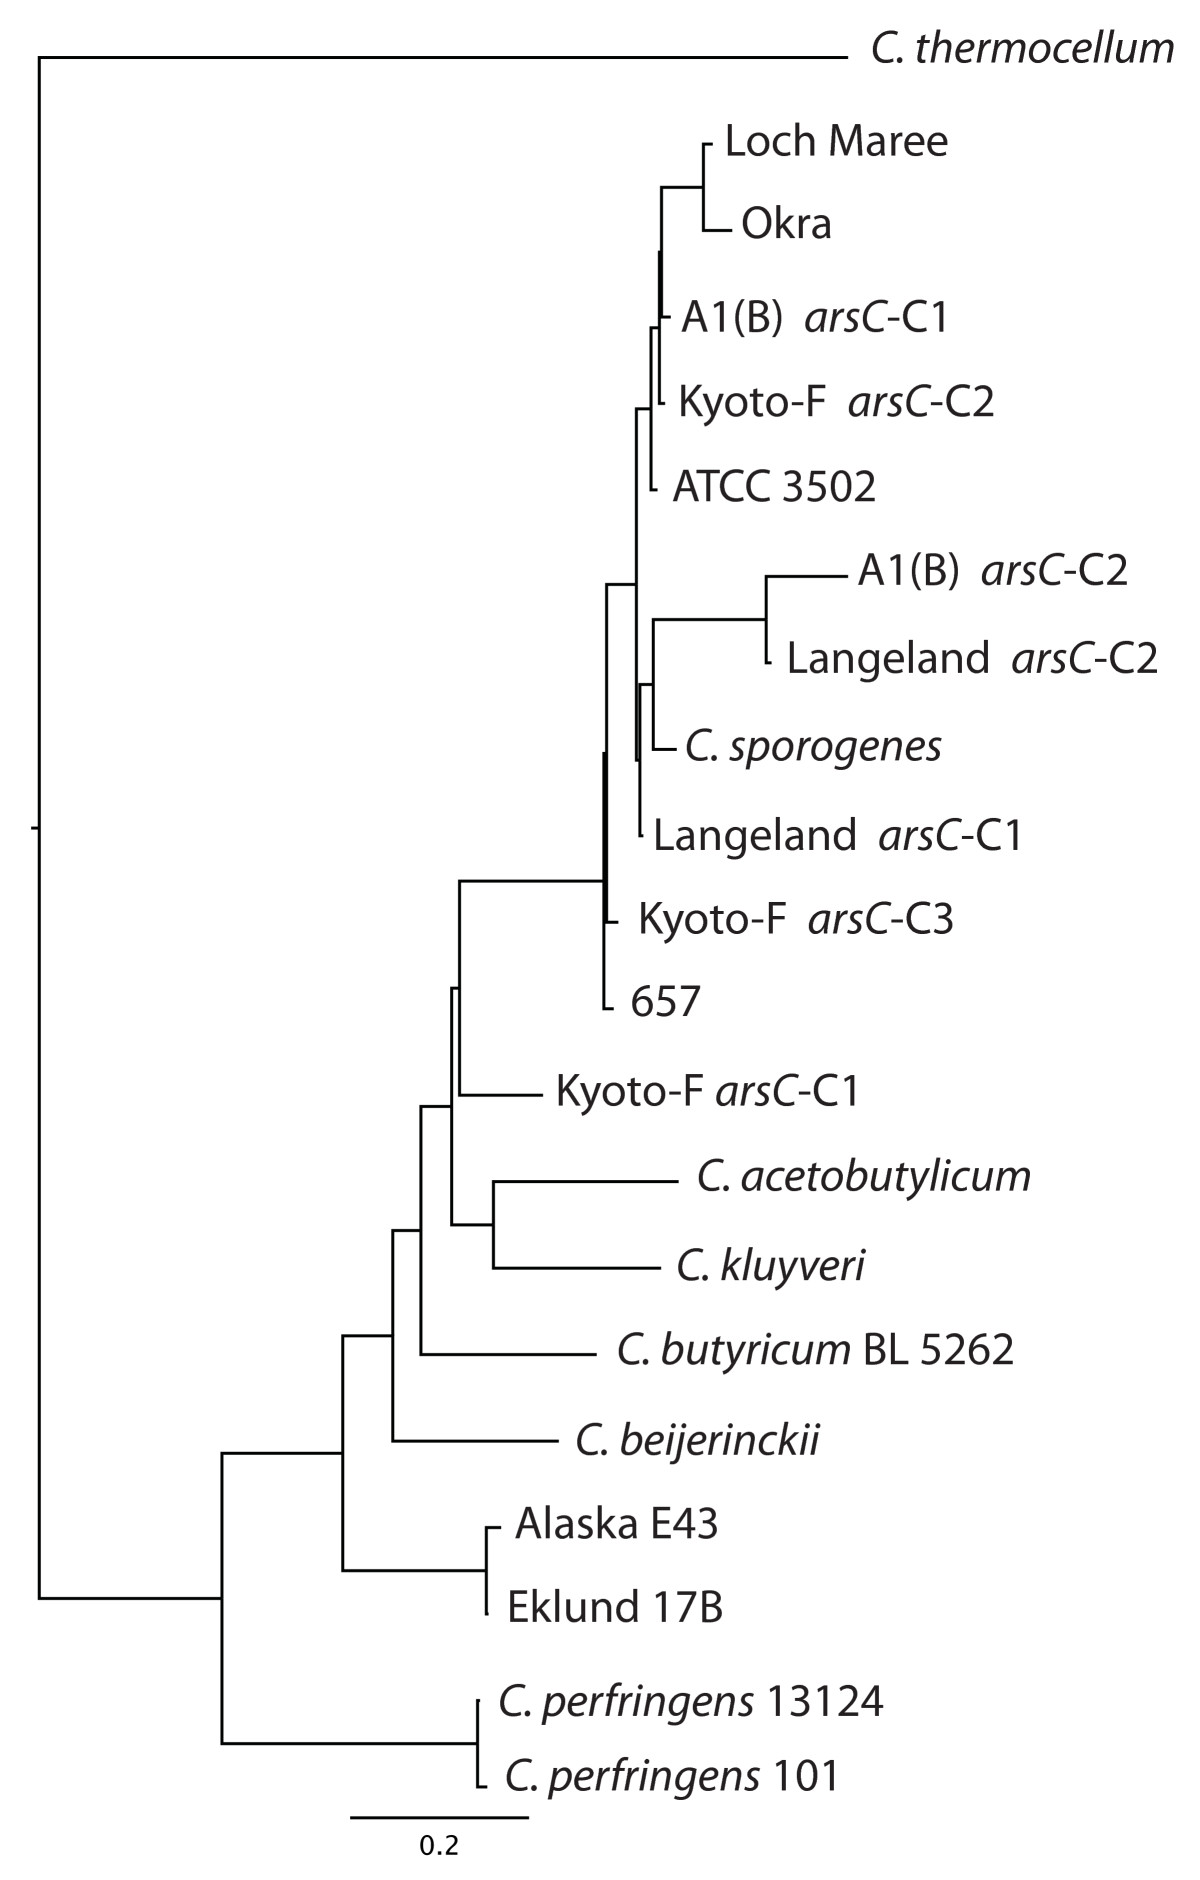 http://static-content.springer.com/image/art%3A10.1186%2F1741-7007-7-66/MediaObjects/12915_2009_Article_274_Fig6_HTML.jpg